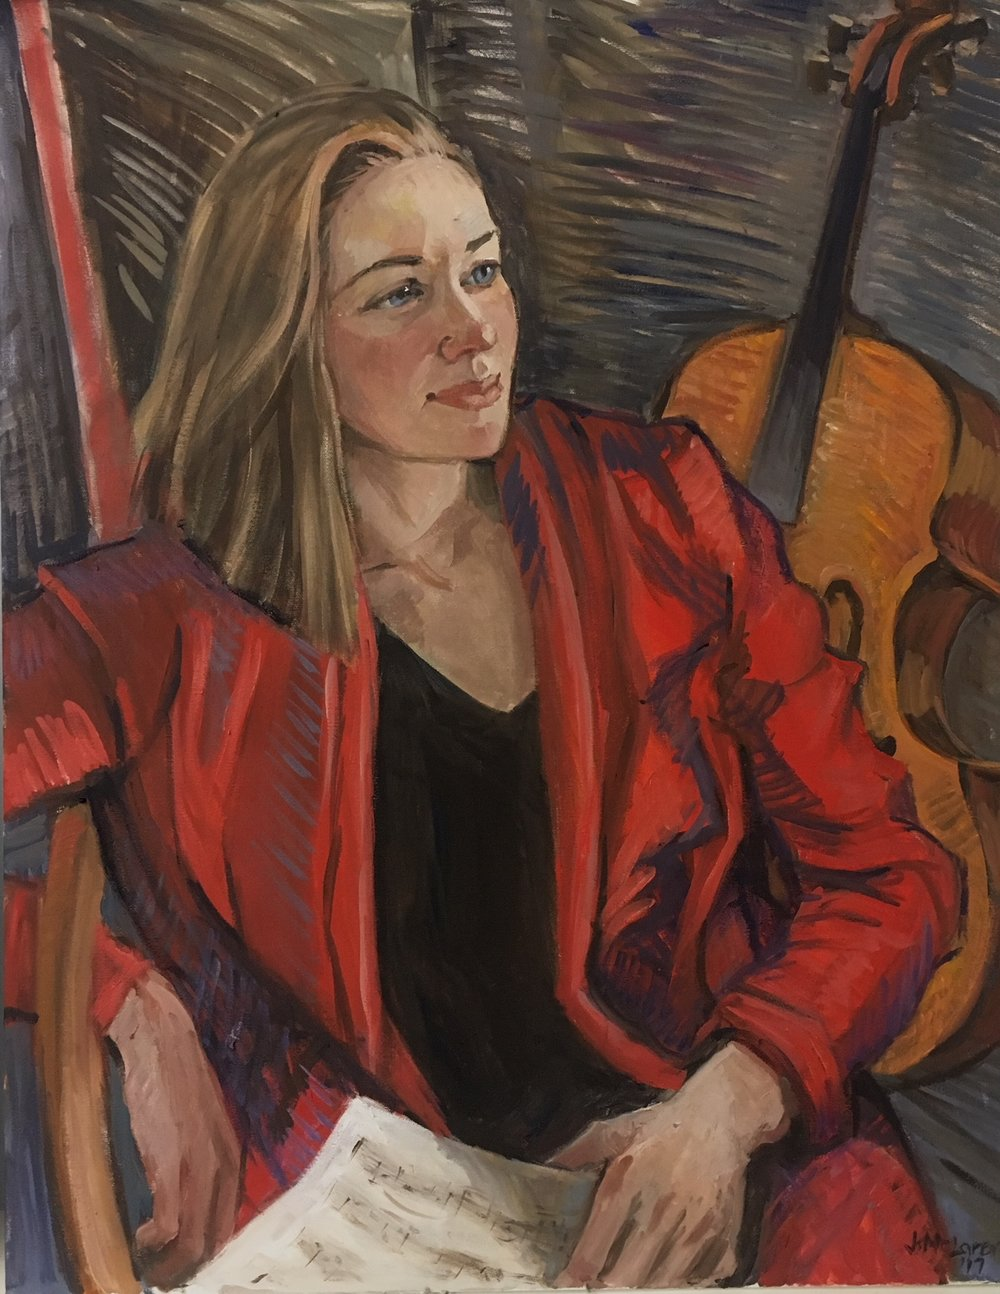 Portrait of Rosanna Butterfield, oil on canvas, 22x28 - She wanted to be portrayed playing her beloved cello, Grandmother (who commissioned it) did not - so a compromise!!!